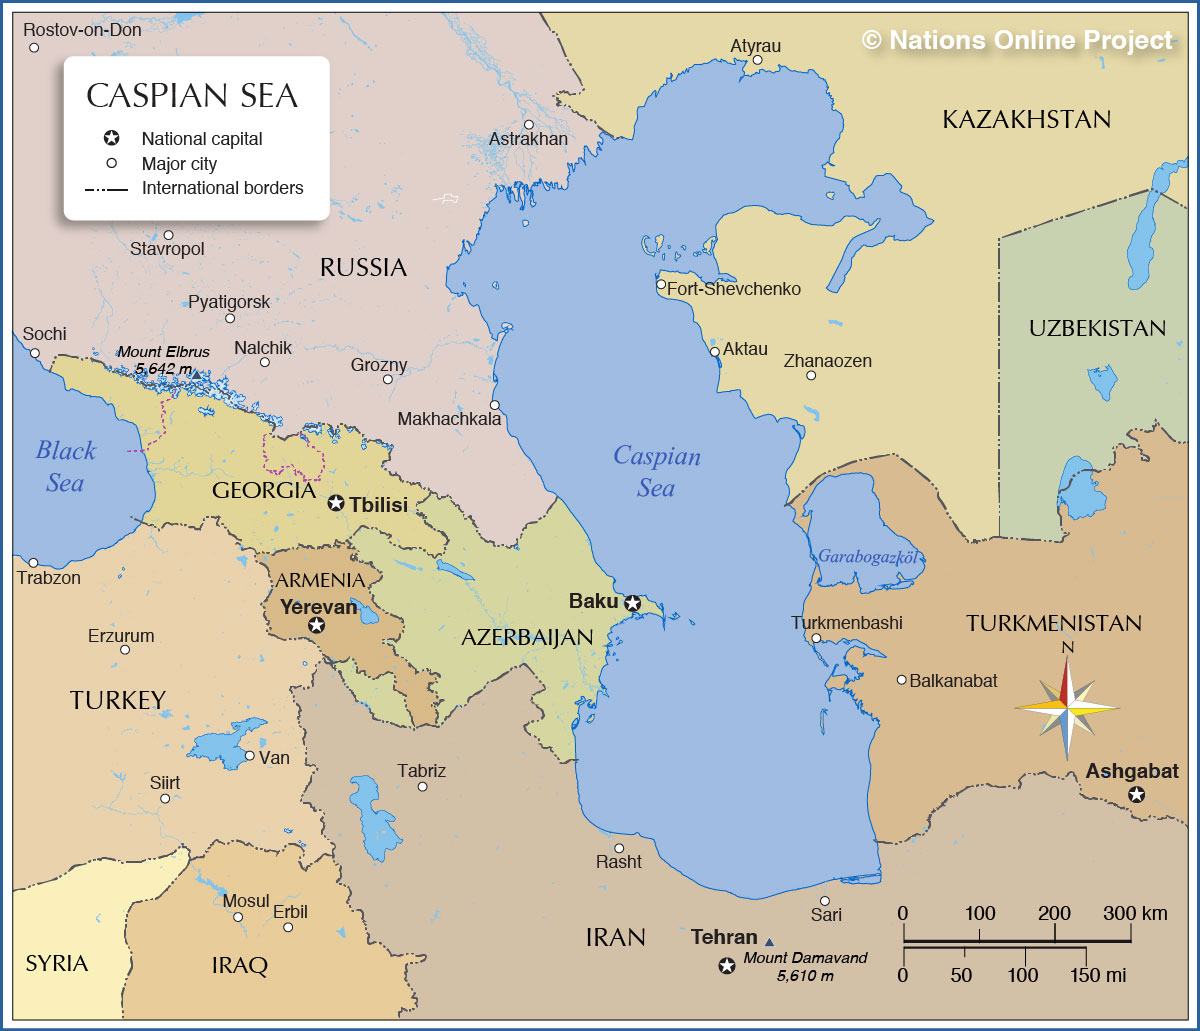 Map of the Caspian Sea - Nations Online Project